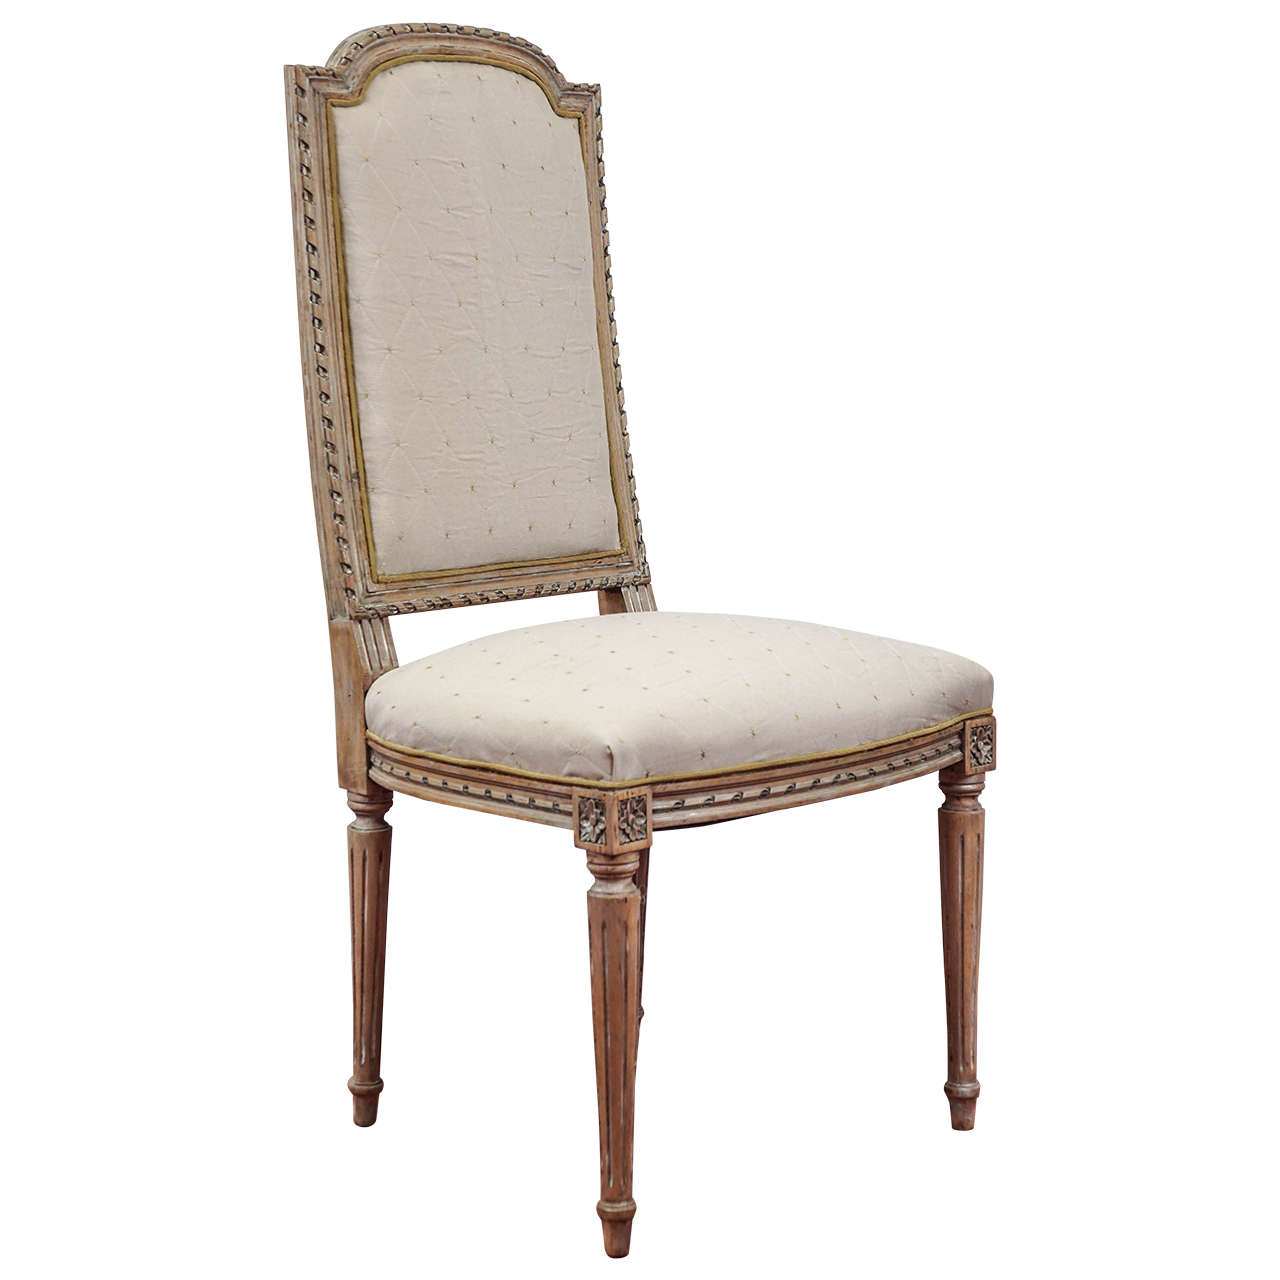 Louis xvi style side chair for sale at 1stdibs for Side chairs for sale